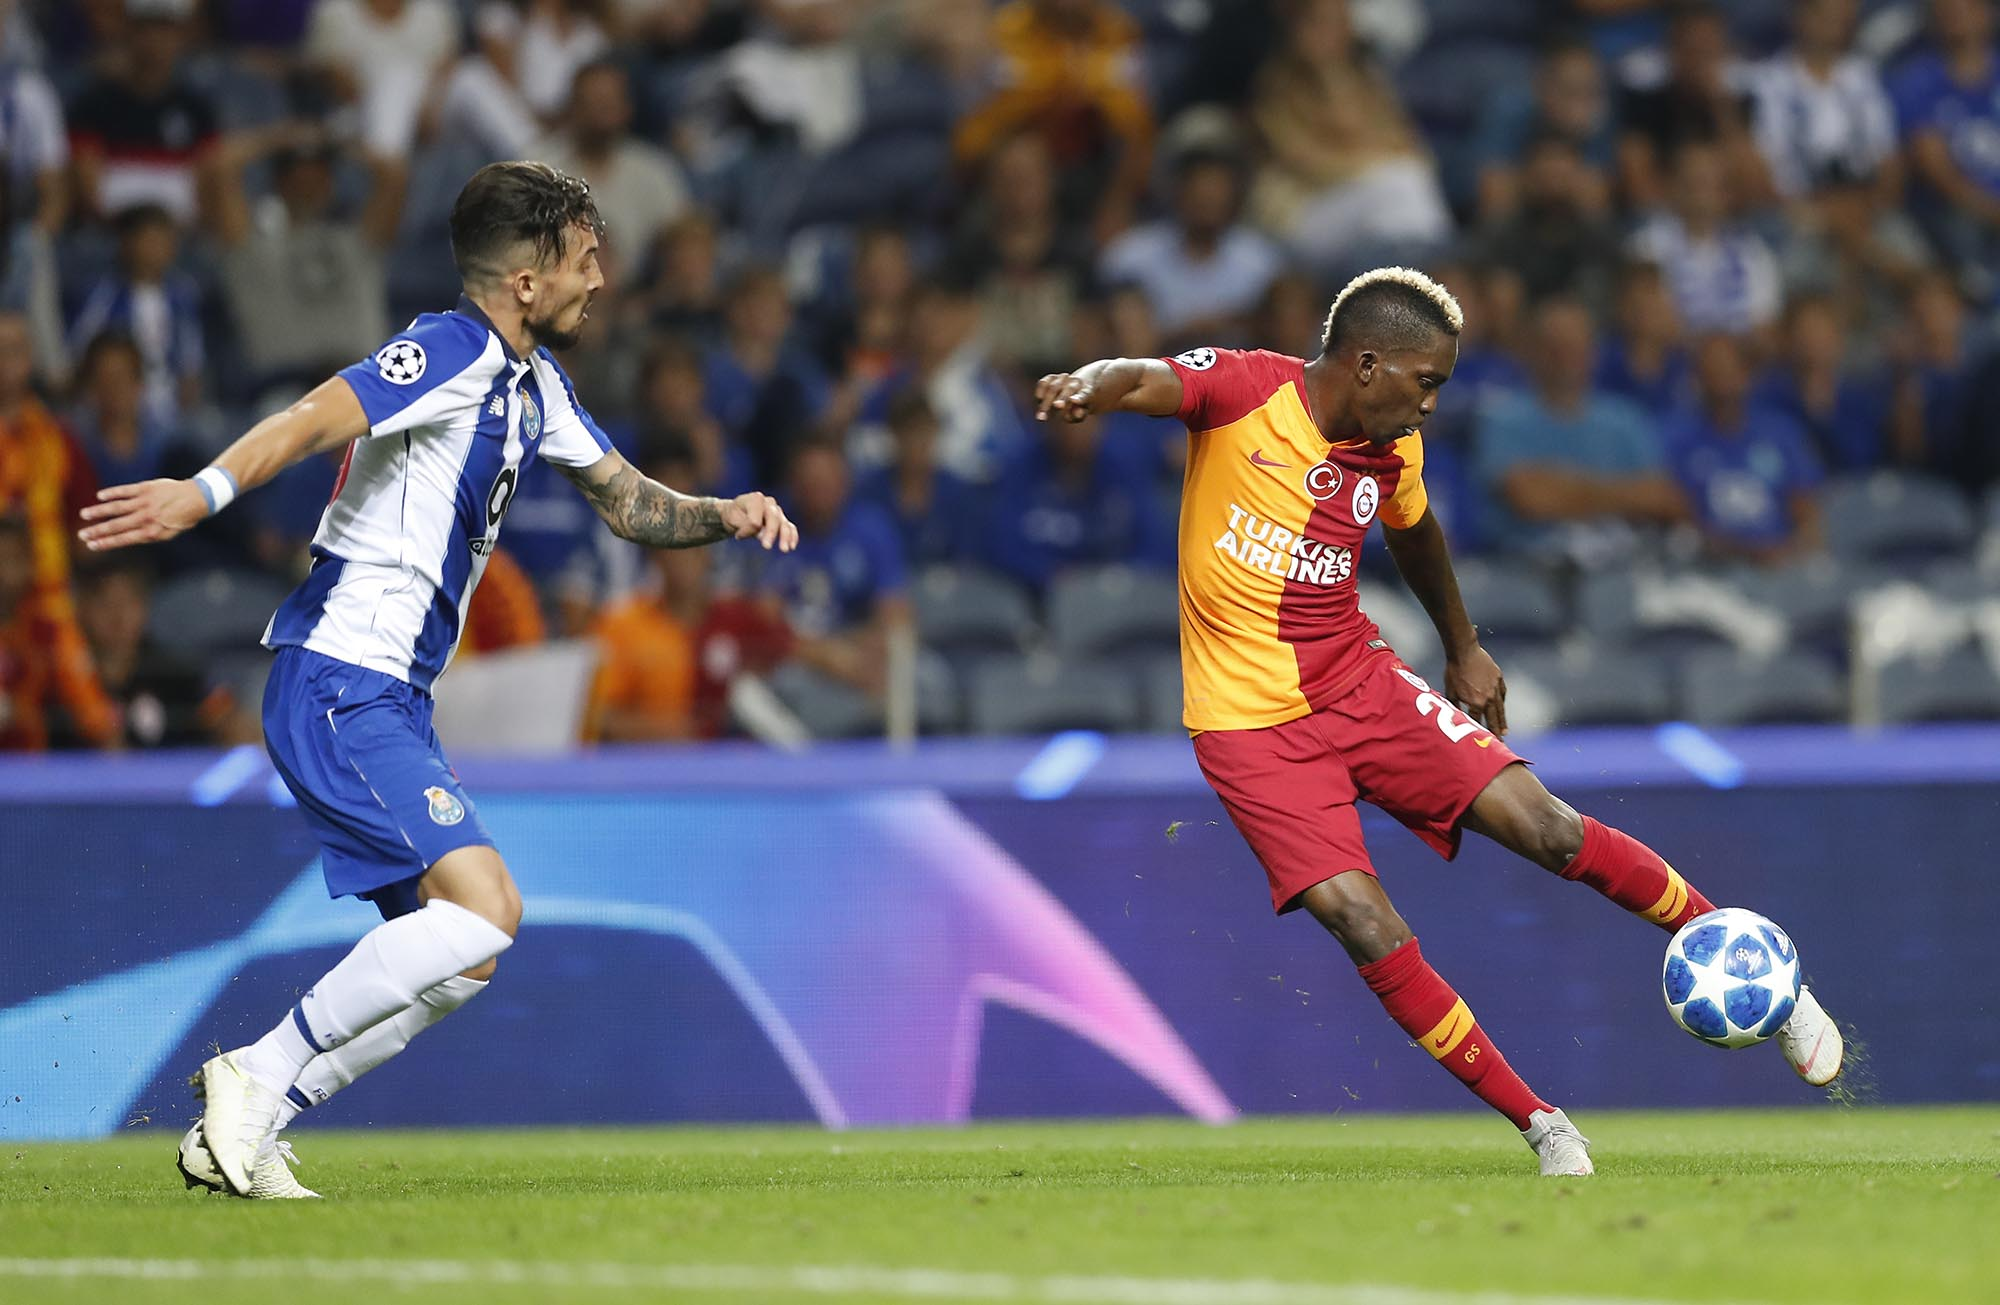 UCL: Onyekuru Fails To Rescue Galatasaray From Defeat; Awaziem Benched